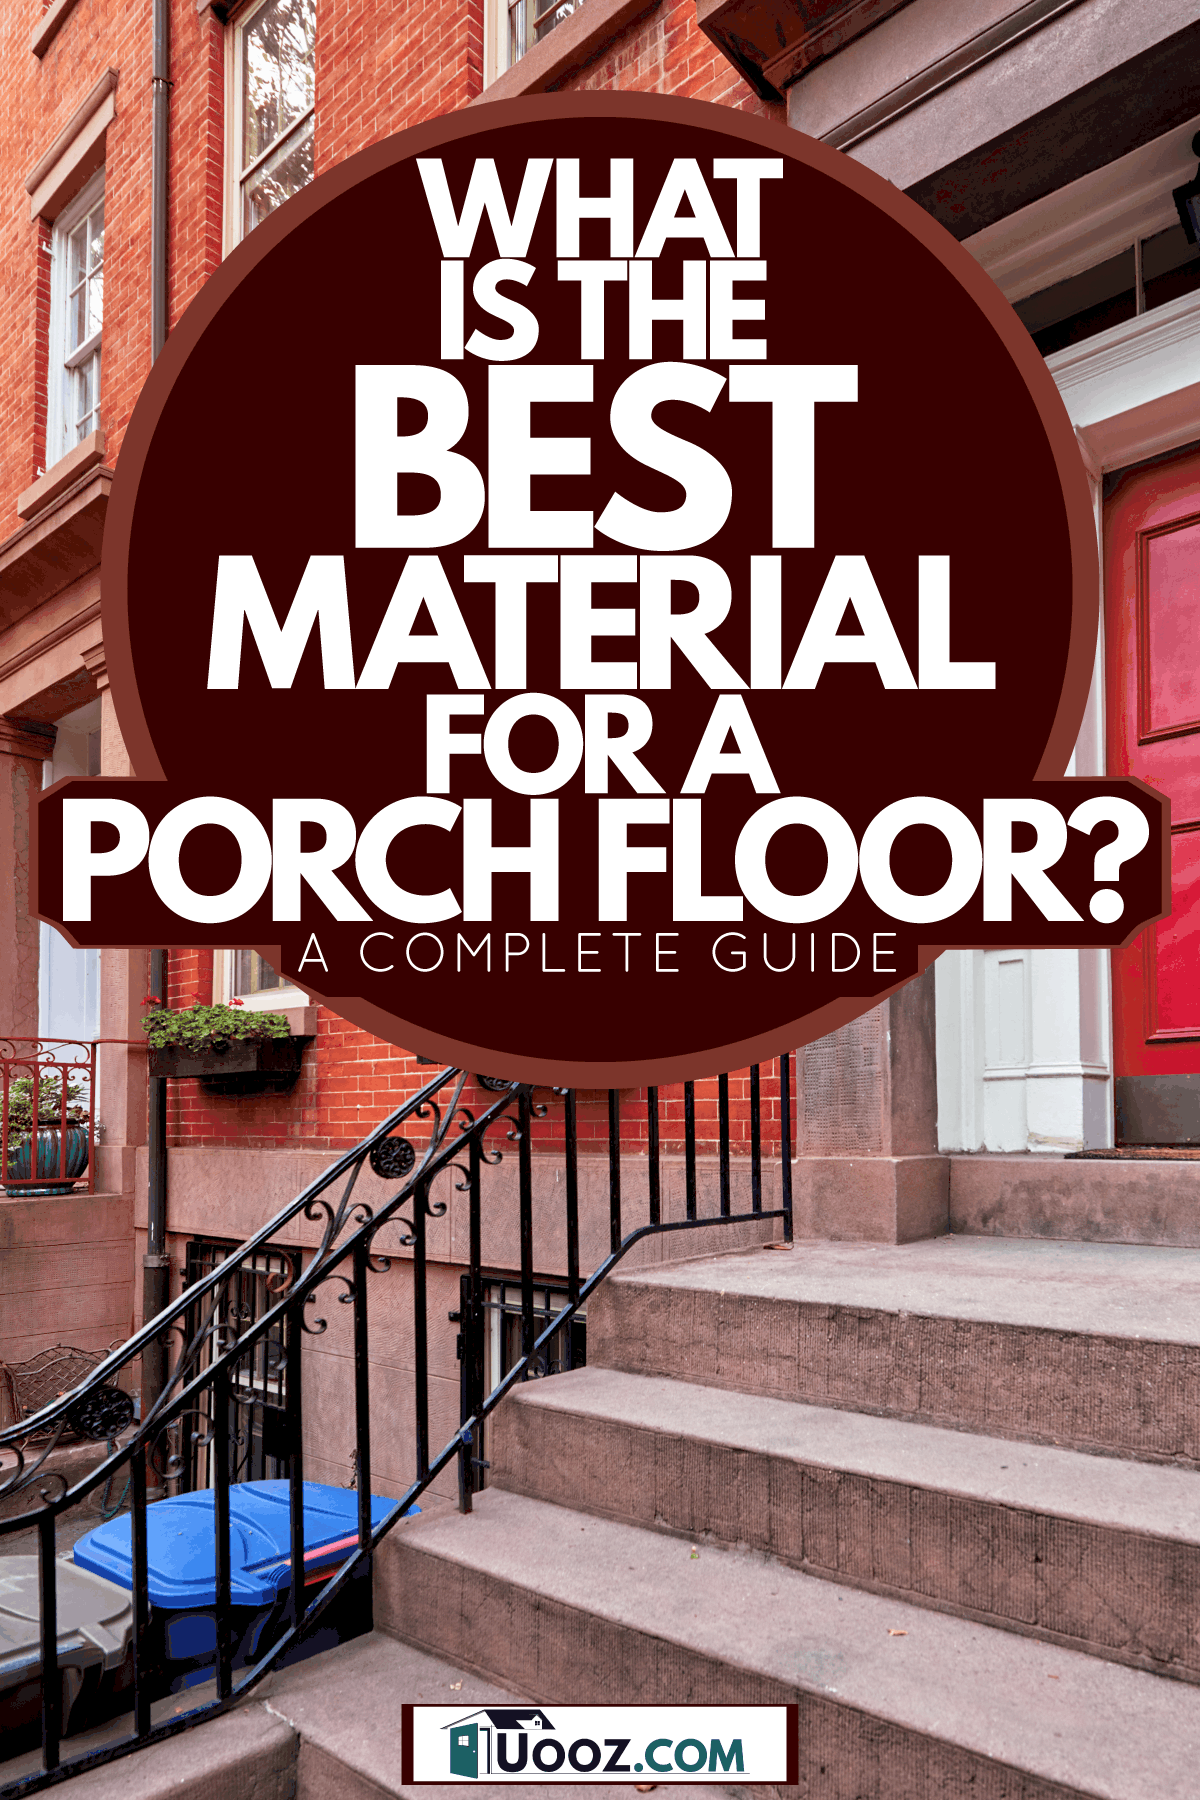 A brownstone brick apartment building with a red front door with metal stair railing, What Is The Best Material For A Porch Floor? [A Complete Guide]